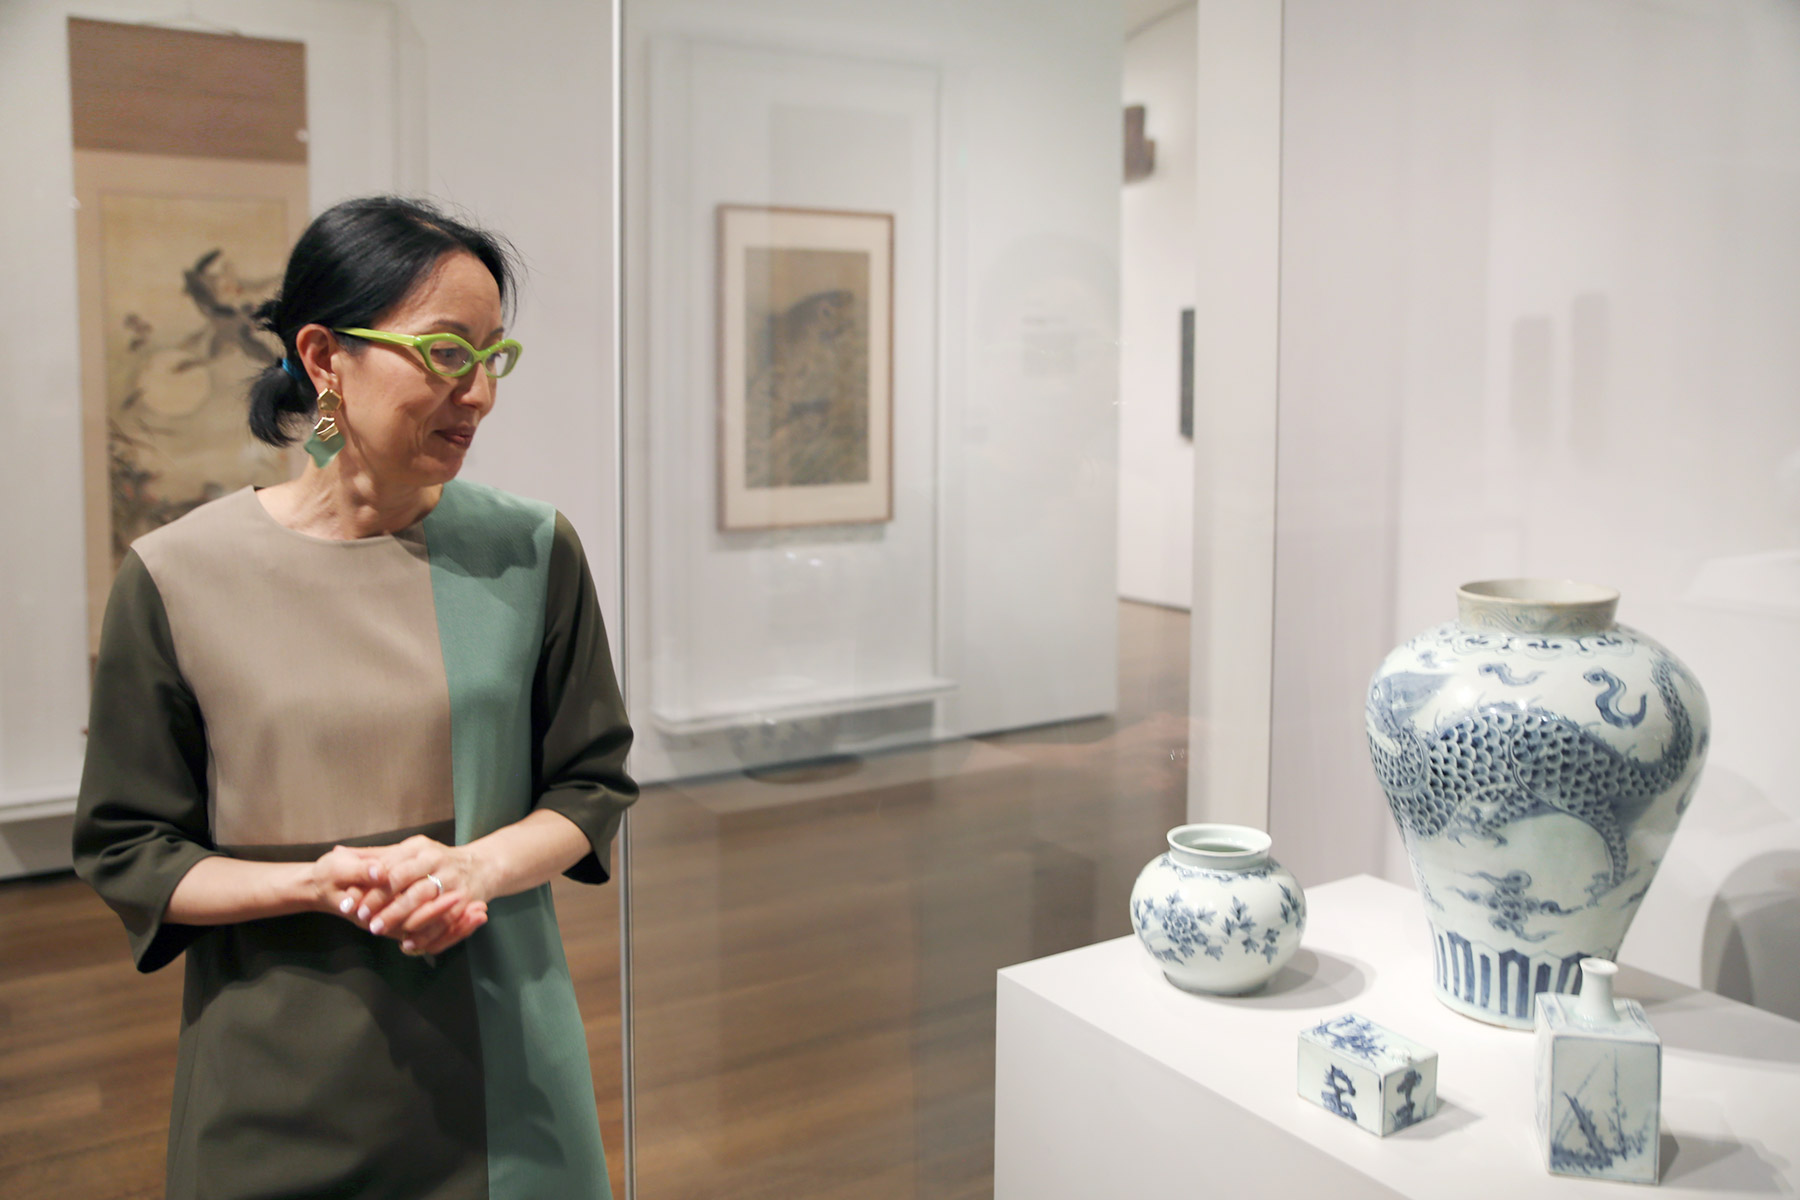 Lee observes the large white jar decorated with blue dragons.